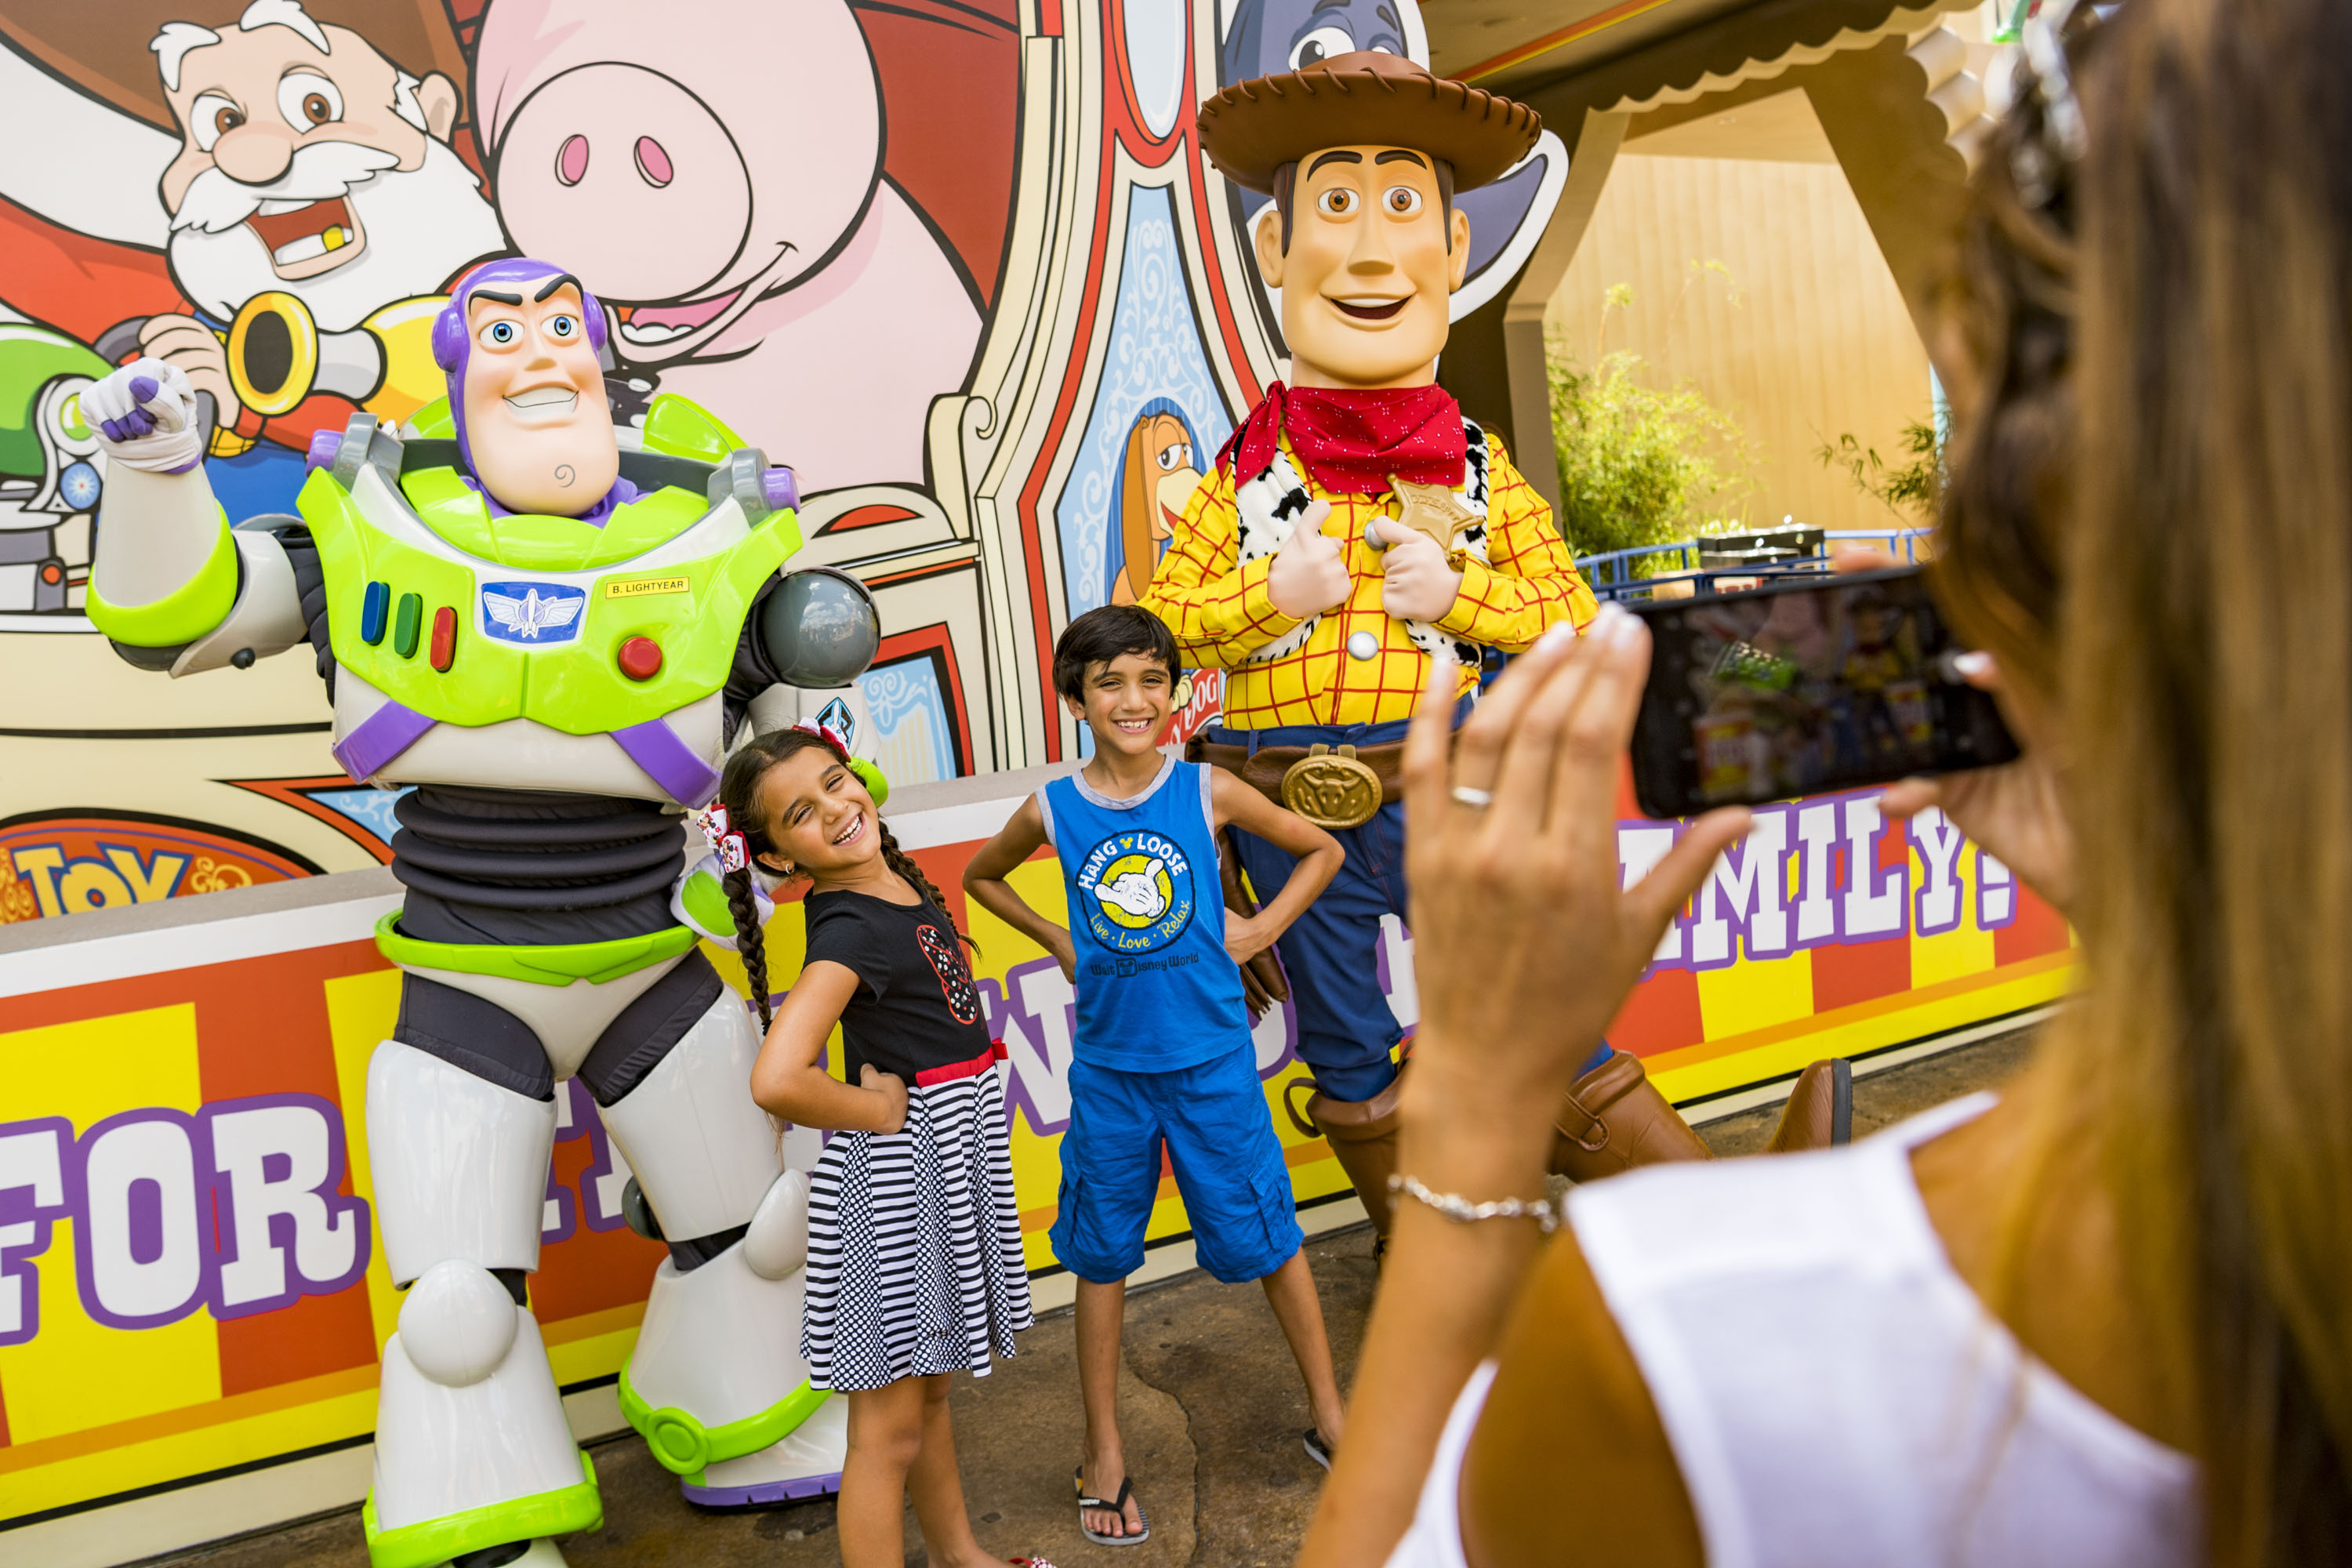 Wood and Buzz meet and greet at Toy Story Land